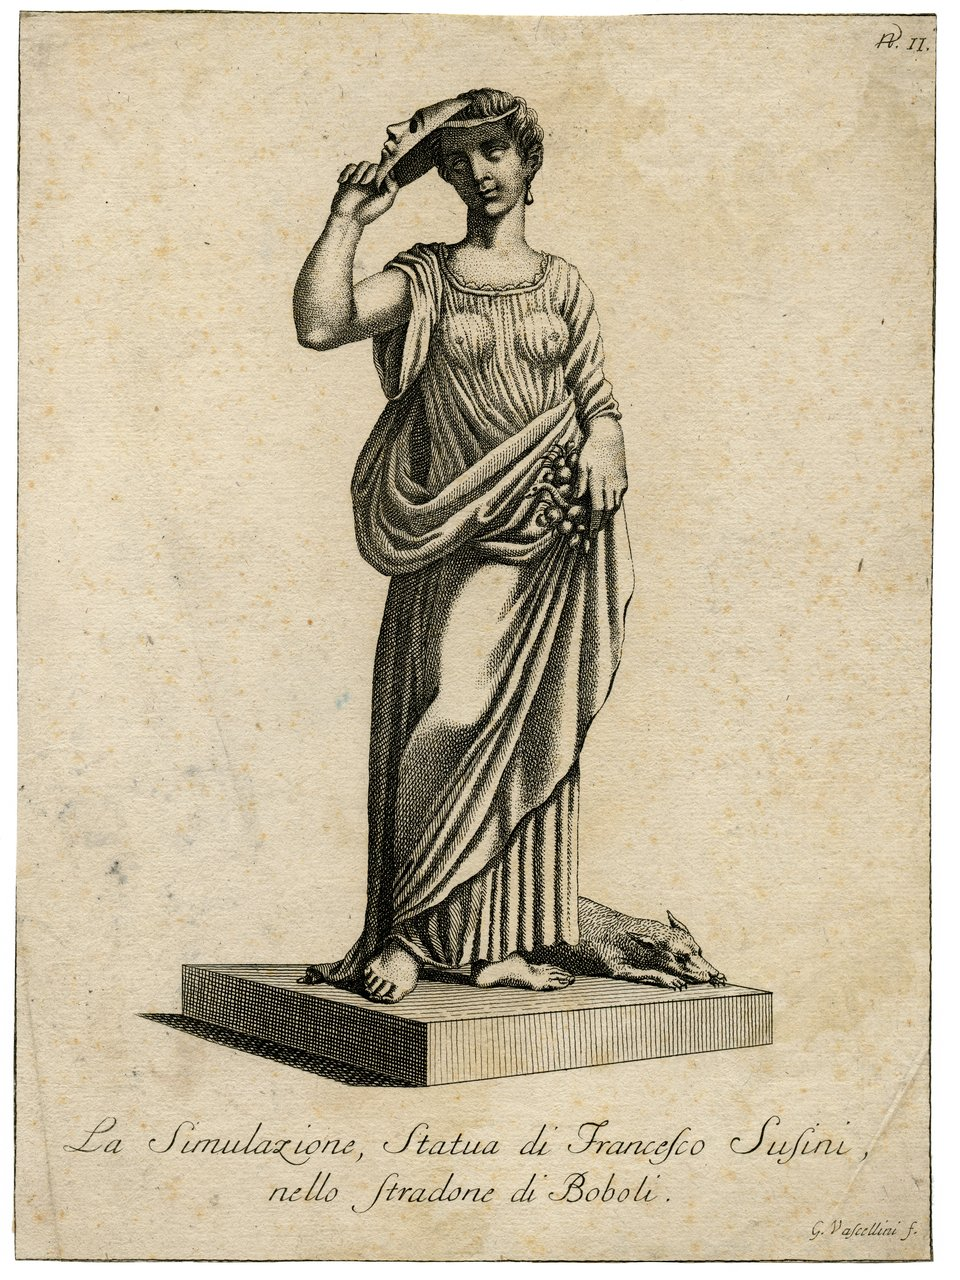 An 18th Century Italian Engraving Of A Sculpture By Fancelli By Gaetano Vascellini